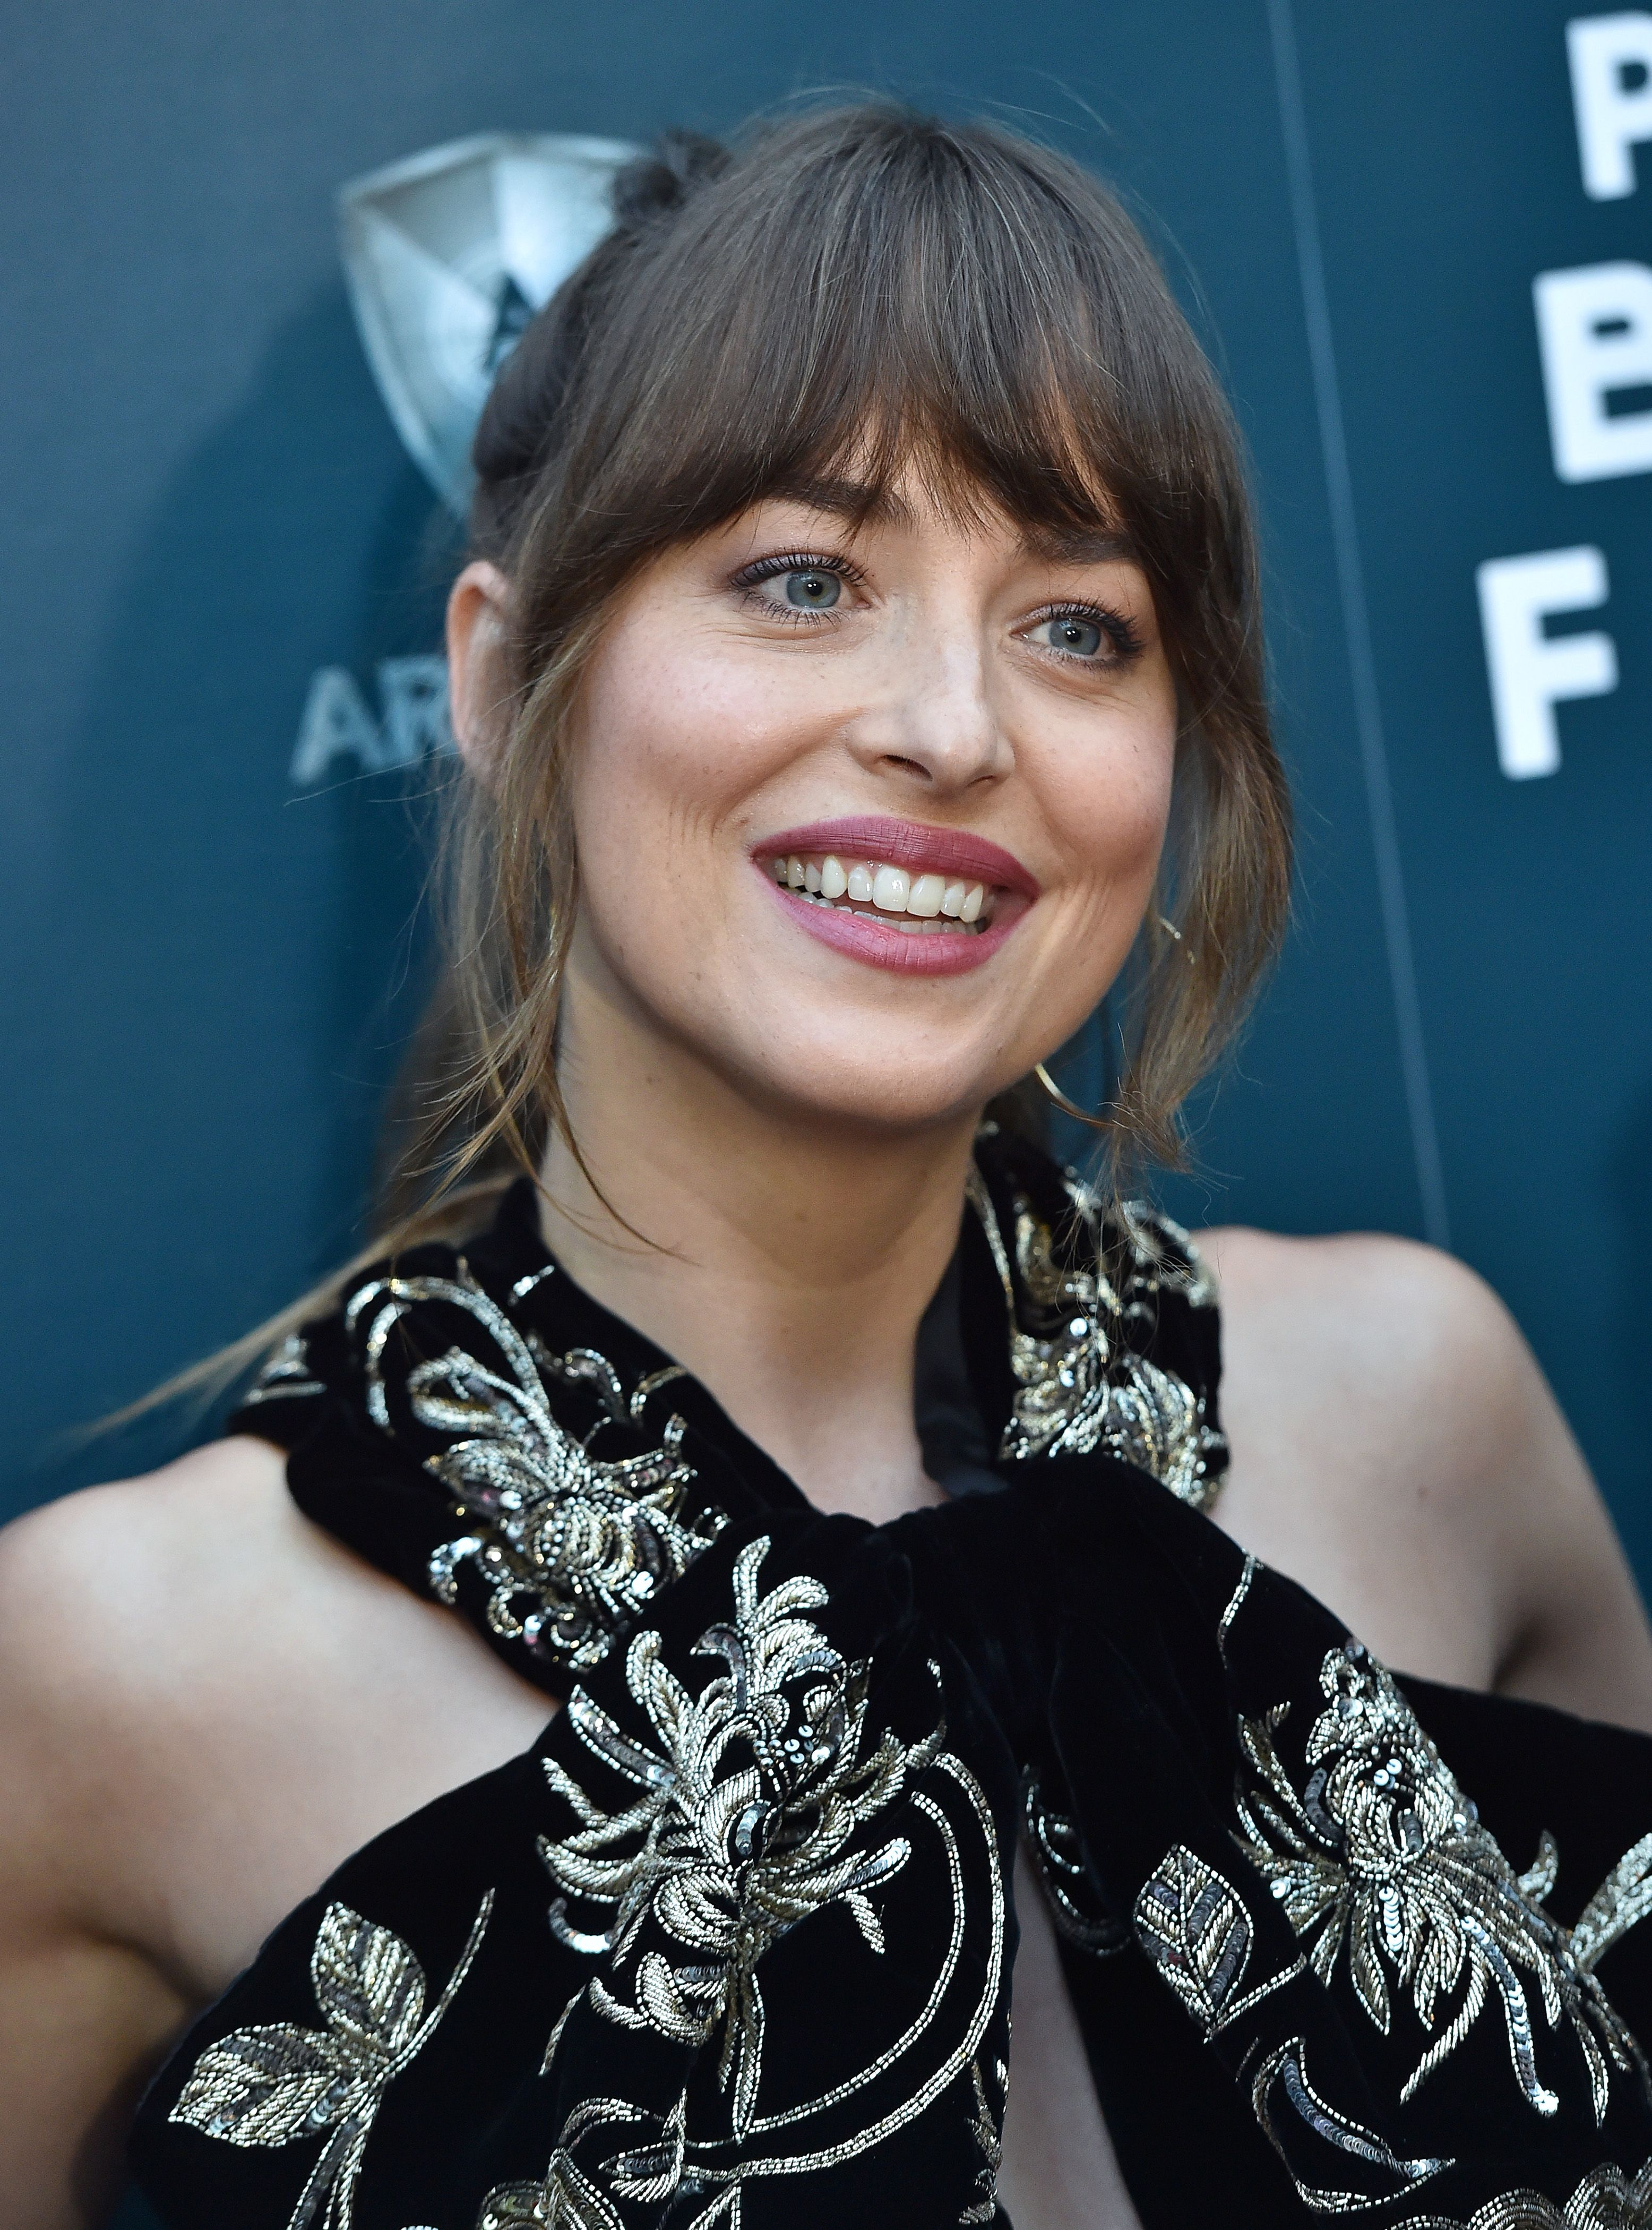 Twitter Is Freaking Out Over Dakota Johnson Closing Her Tooth Gap